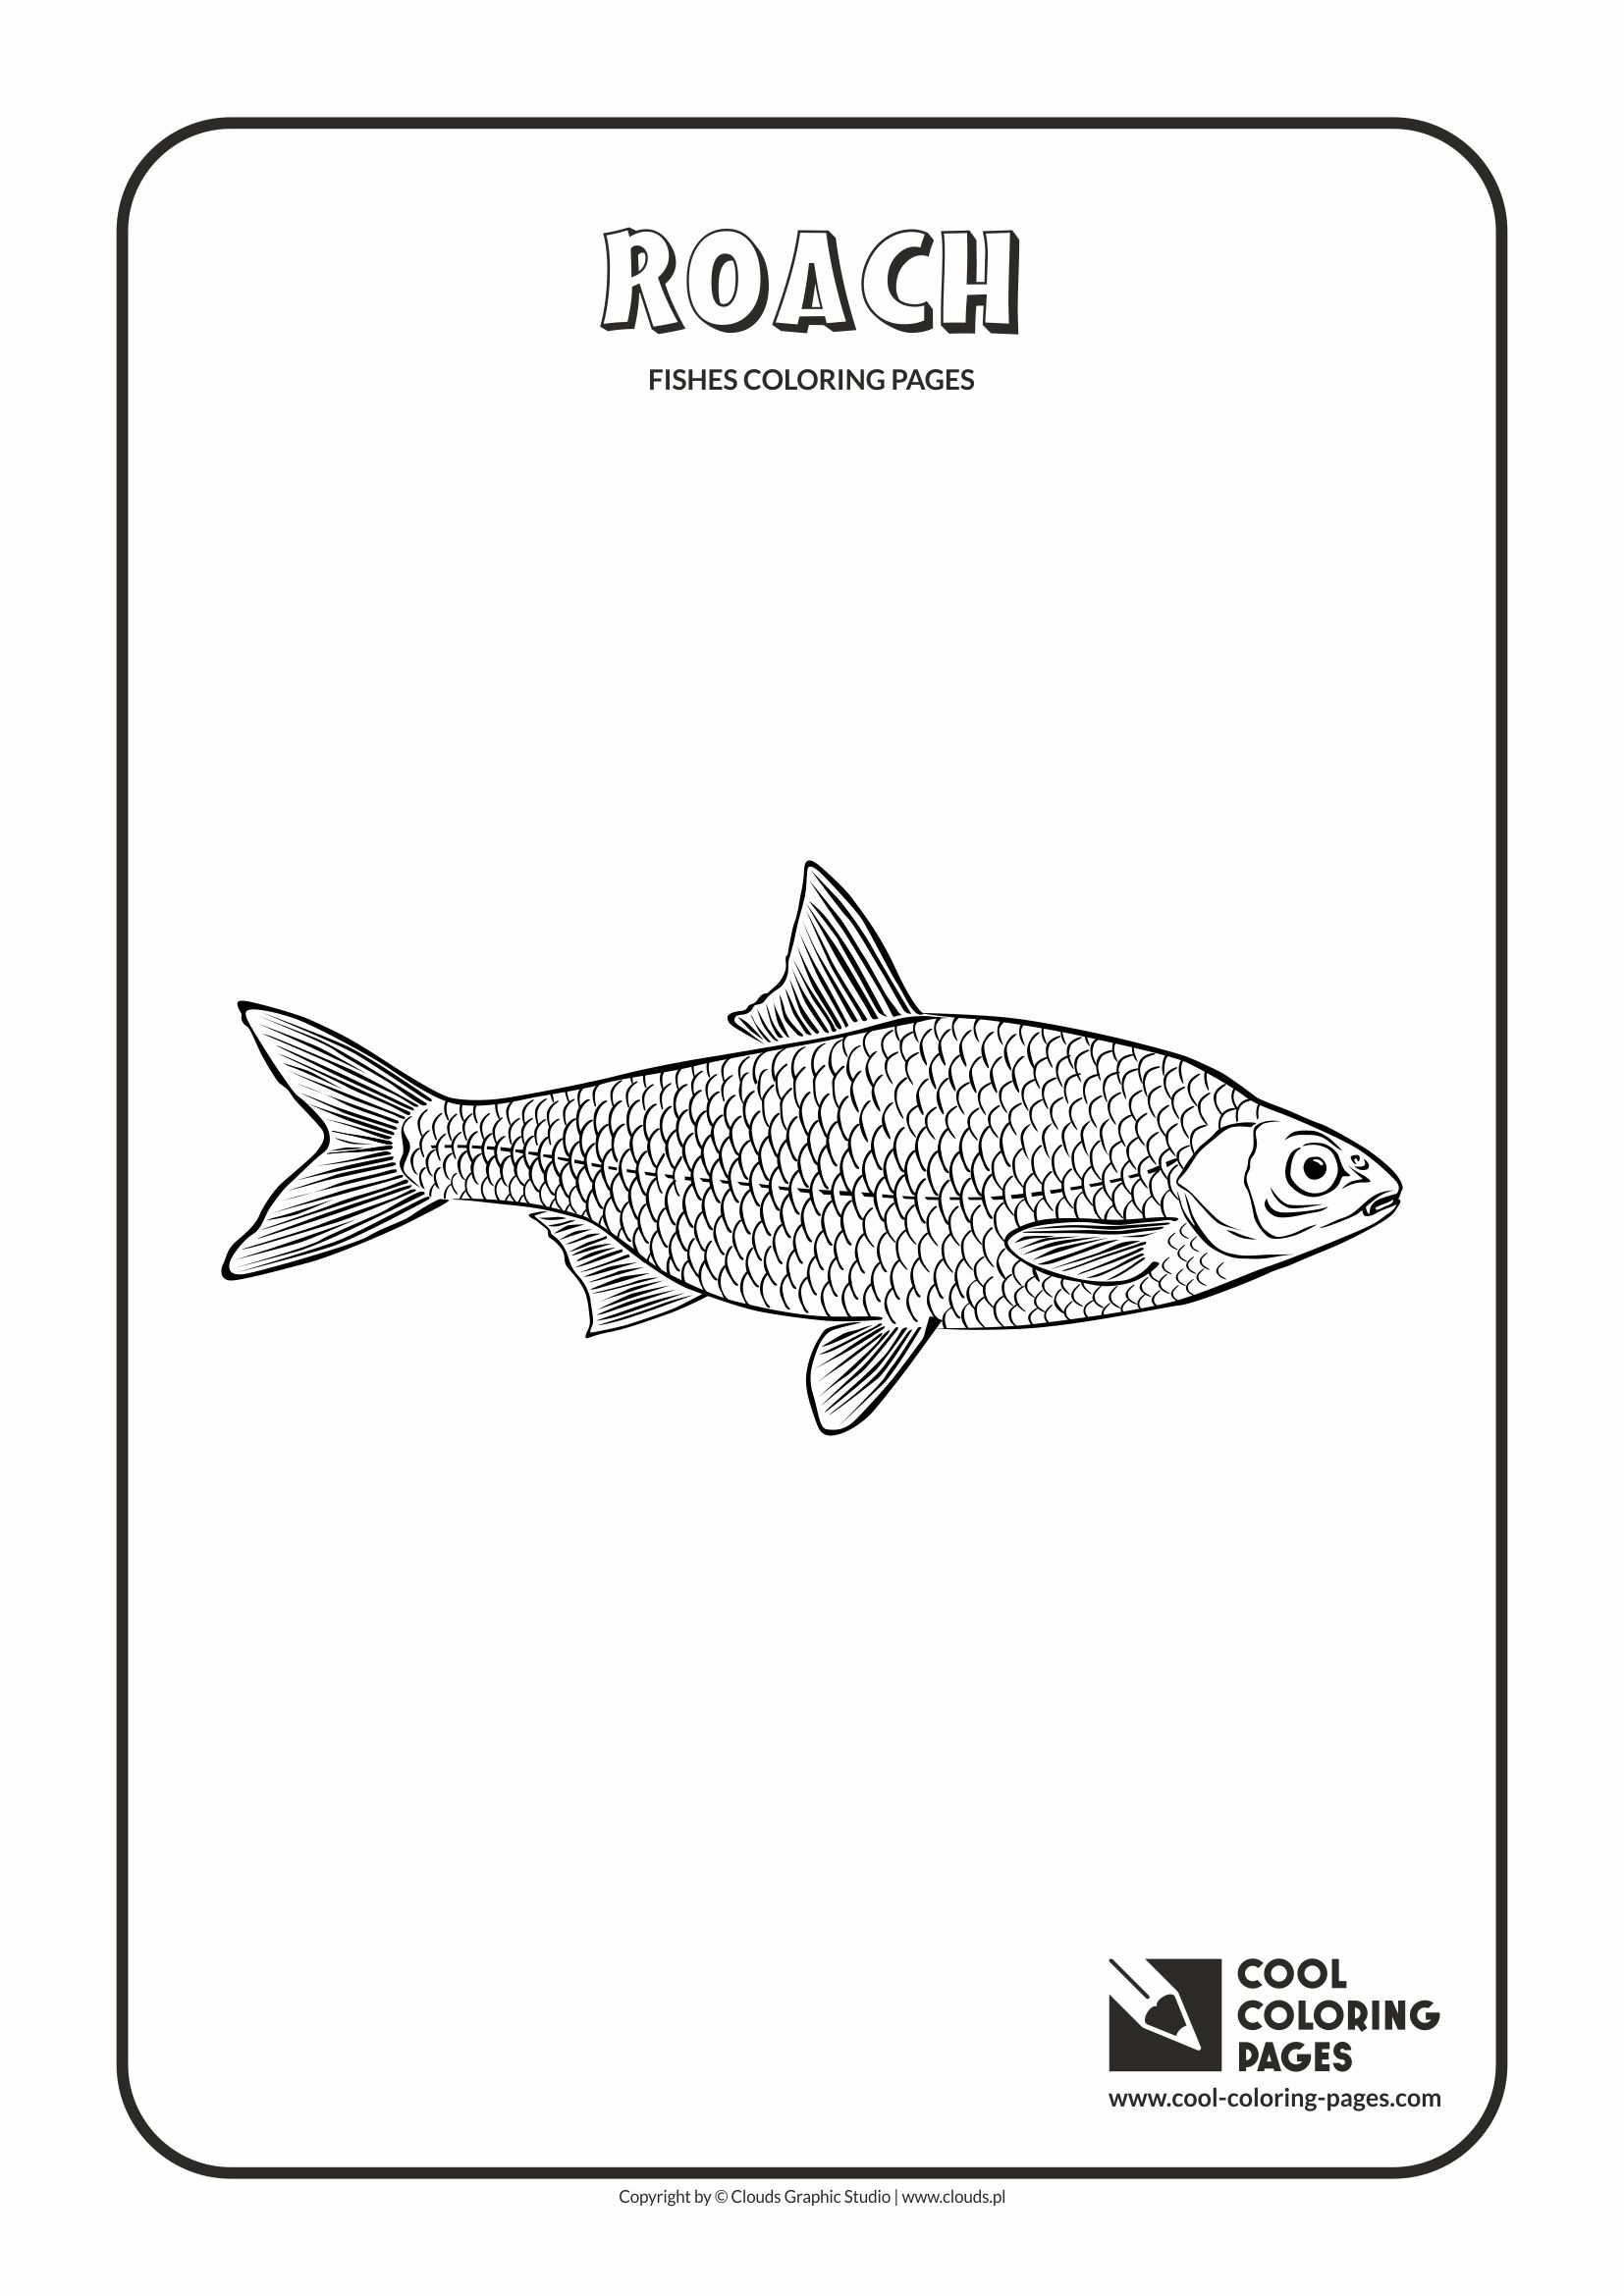 Cool Coloring Pages - Animals / Roach / Coloring page with roach